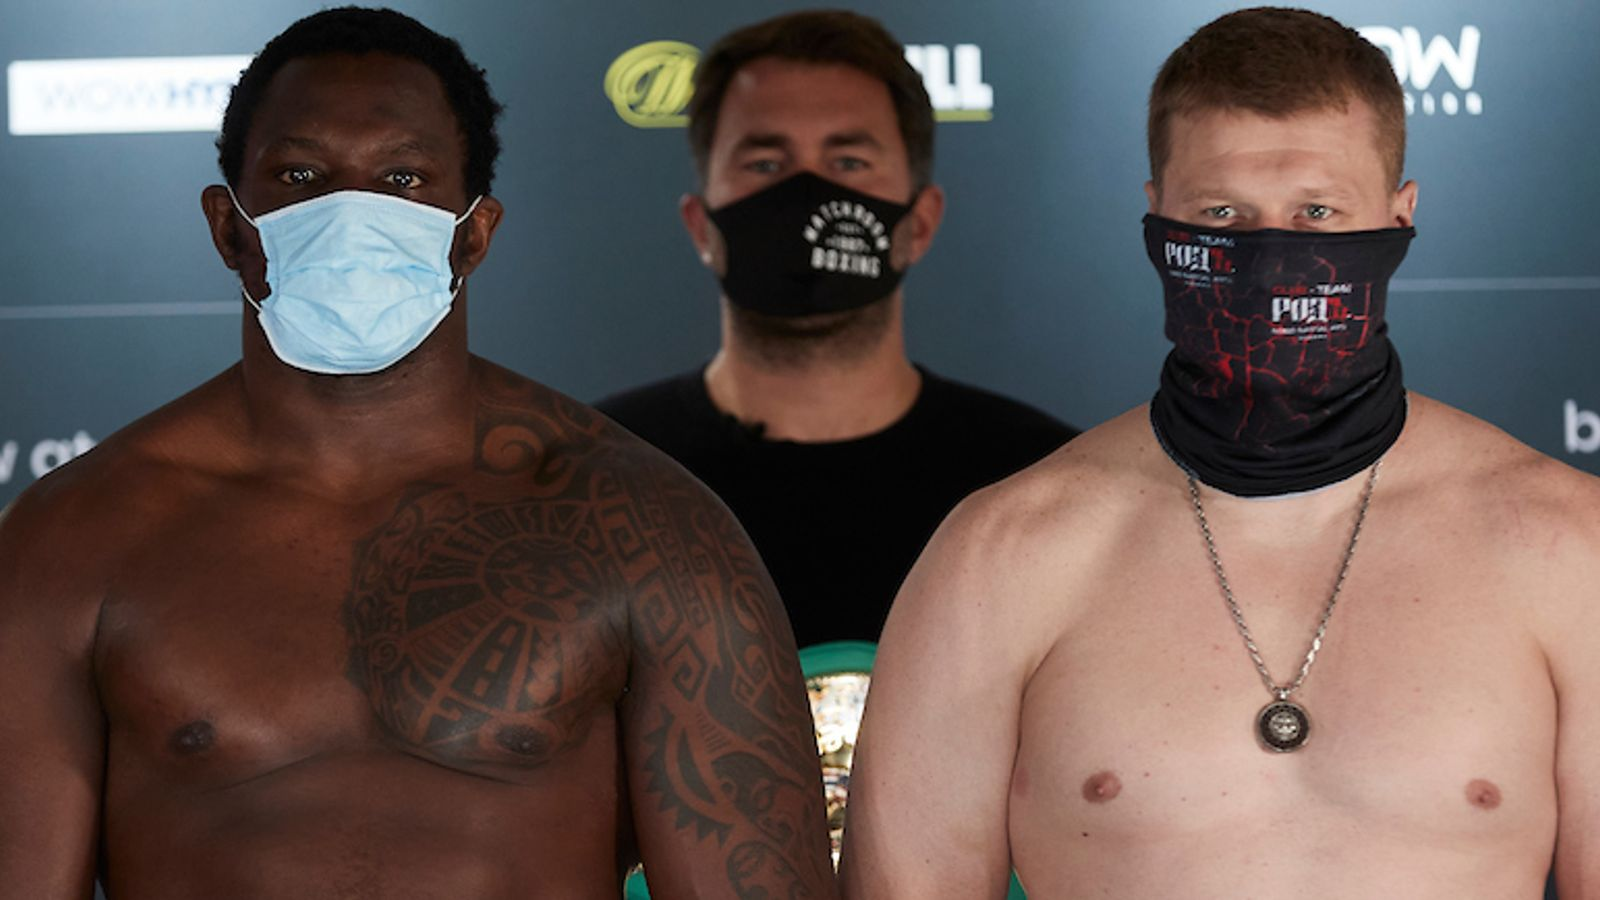 Whyte vs Povetkin: Dillian Whyte defeats demons on the scales